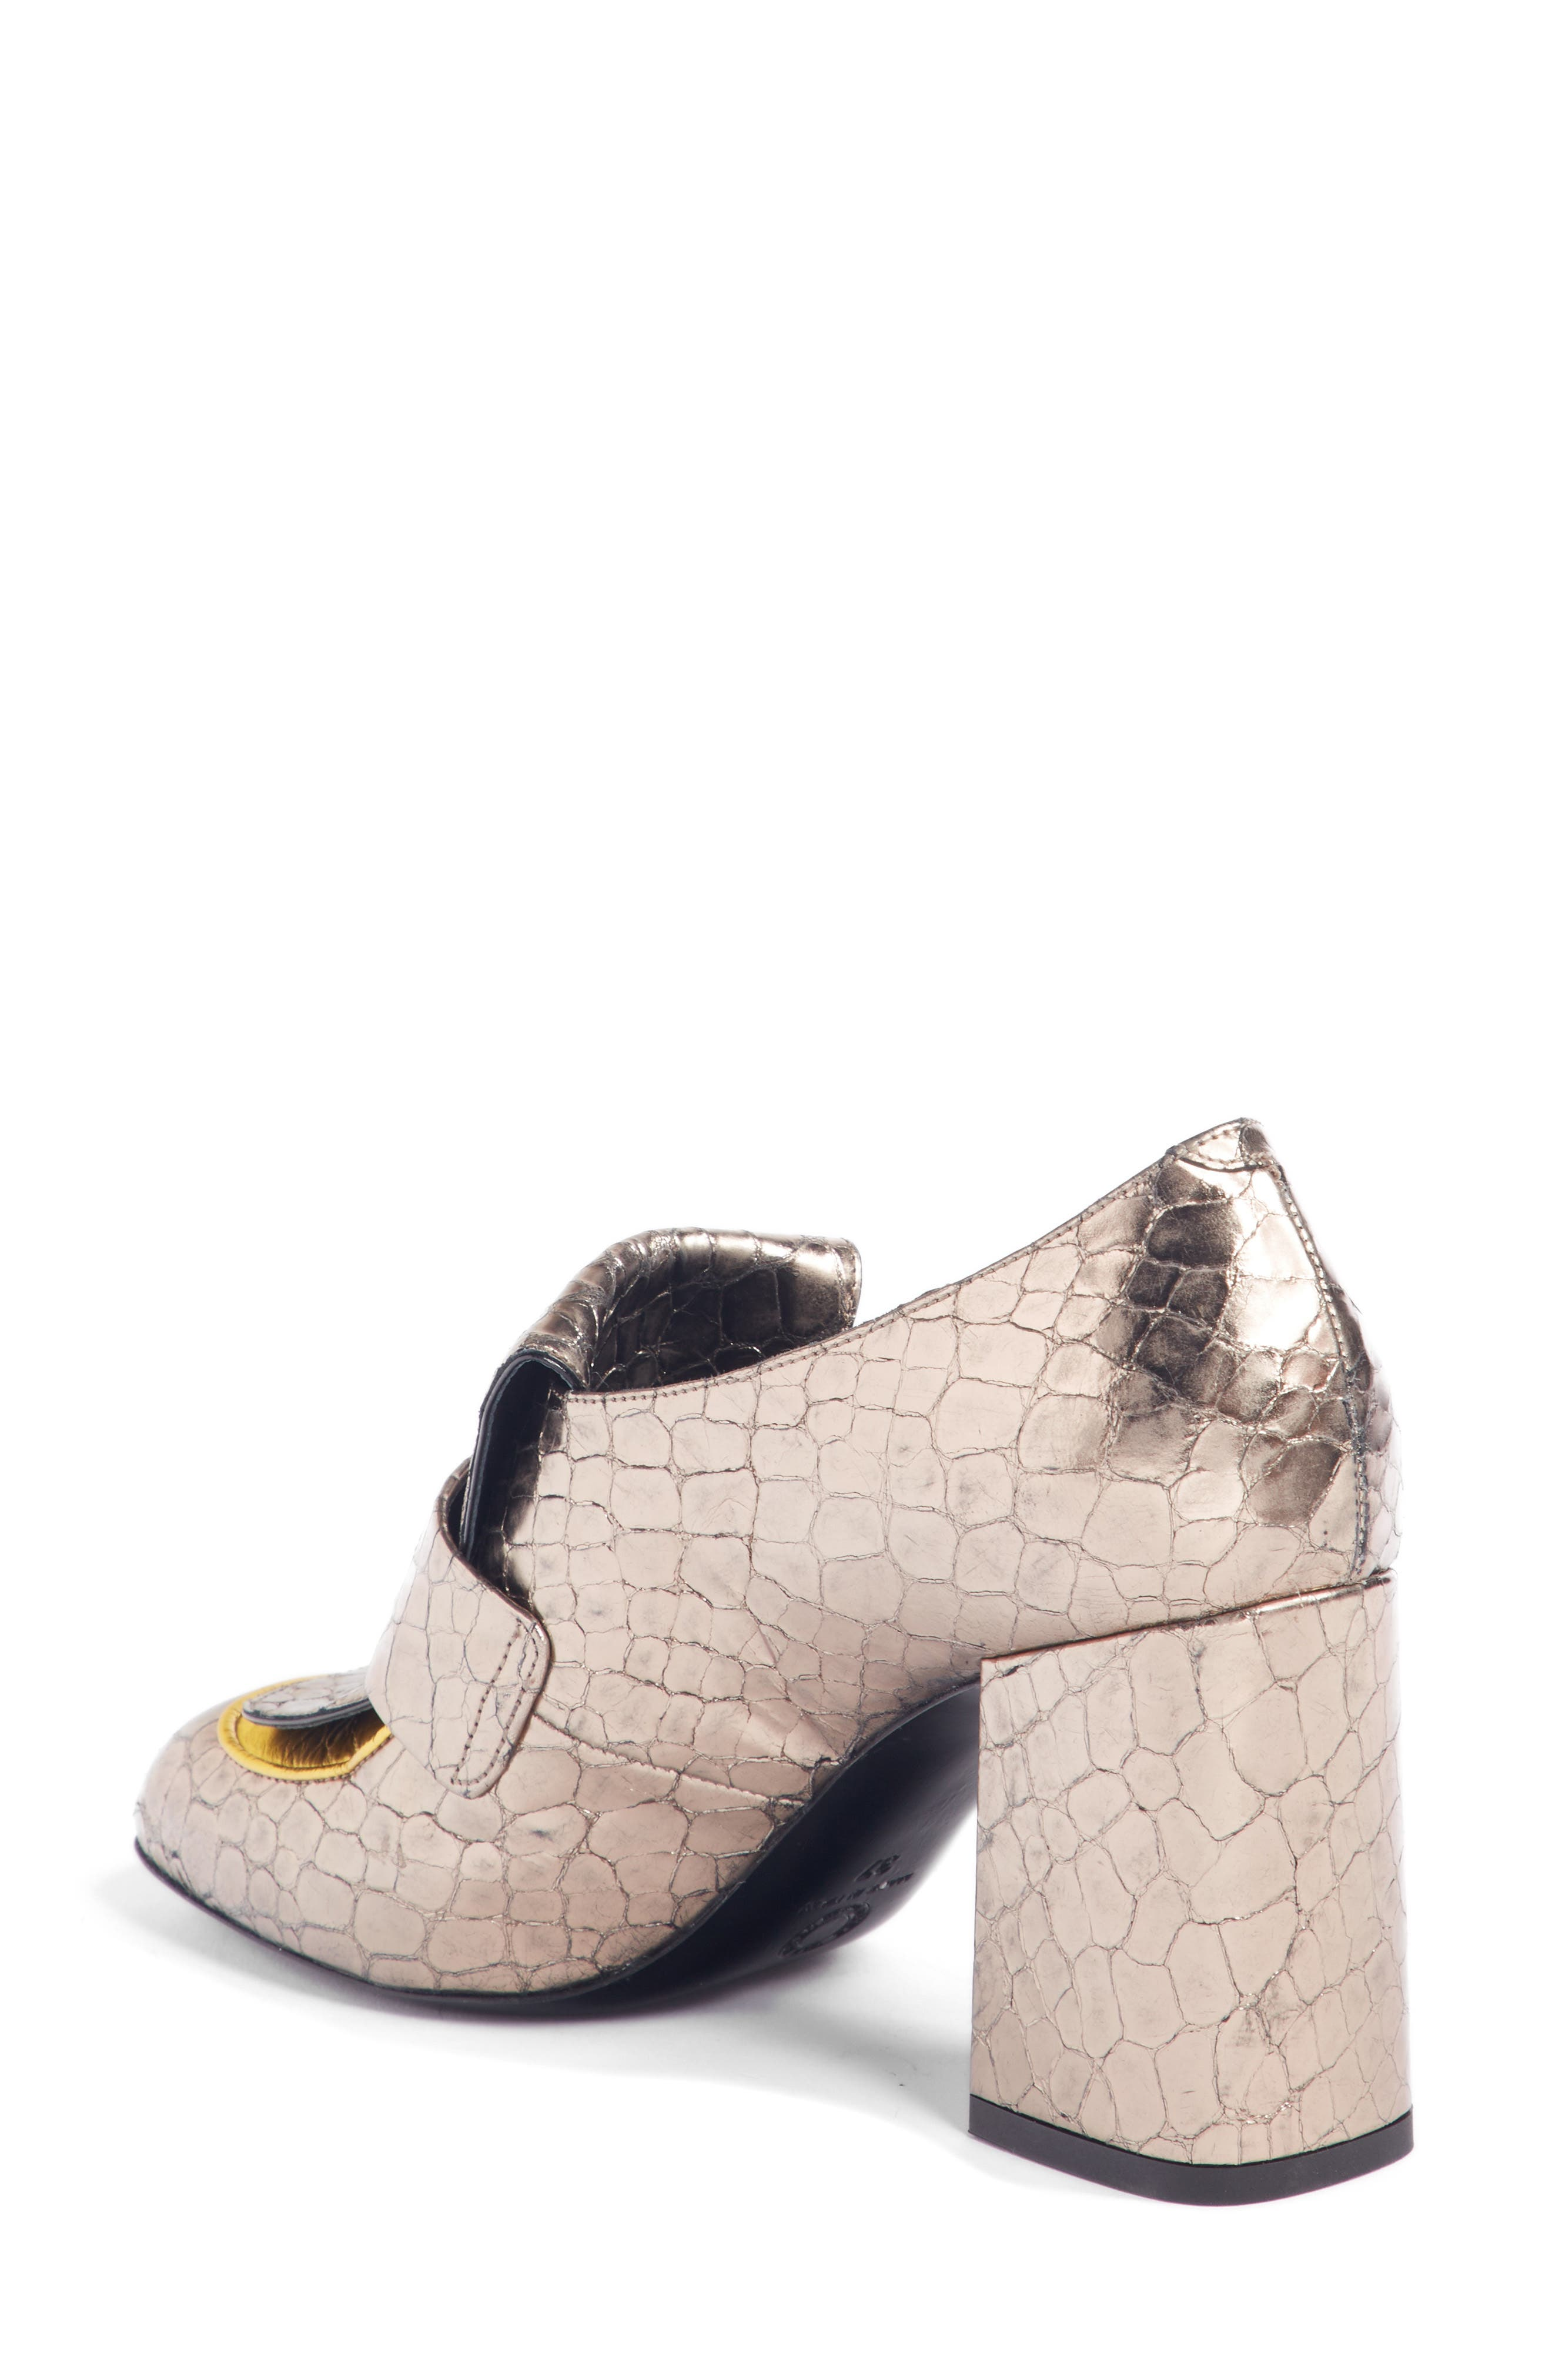 Reptile Loafer Pump,                             Alternate thumbnail 2, color,                             SILVER